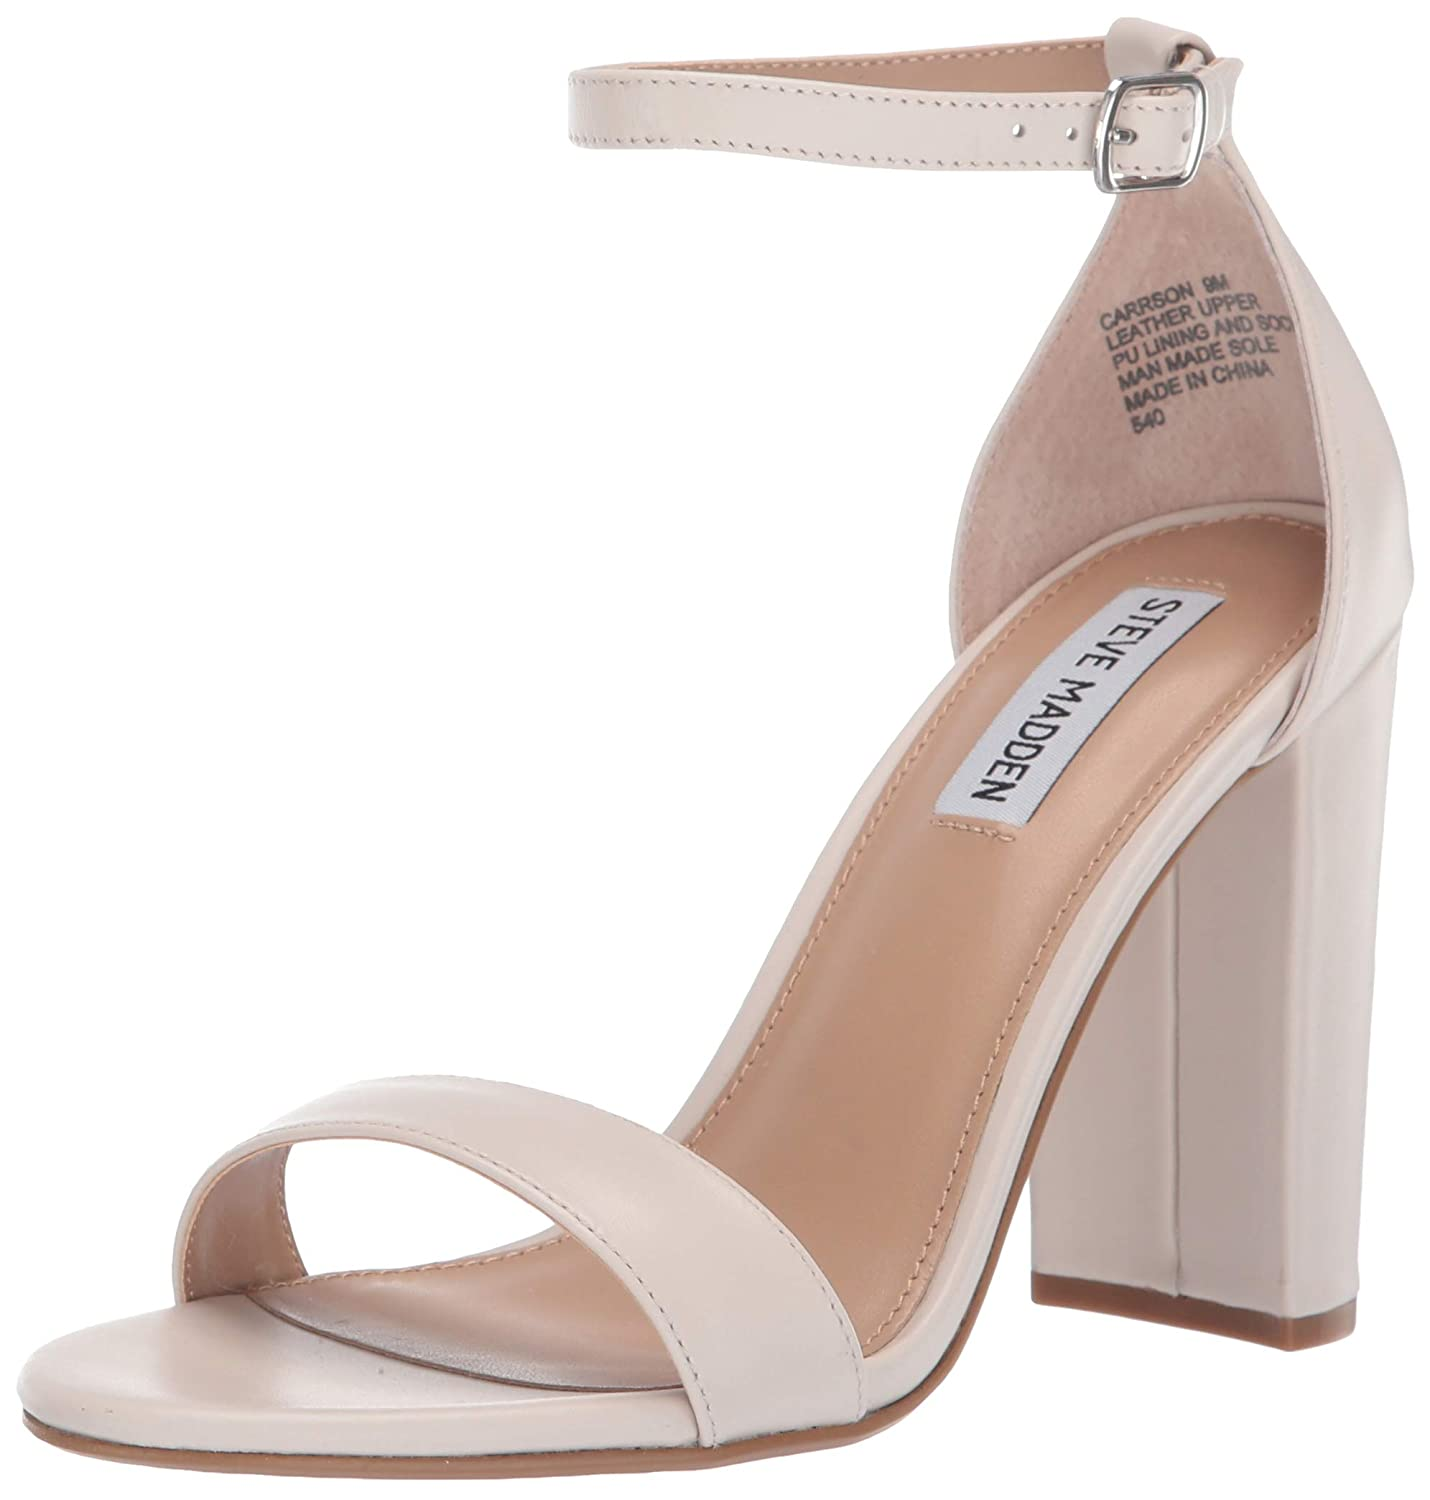 a9ddf058544 Steve Madden Women's Carrson Fashion Sandals